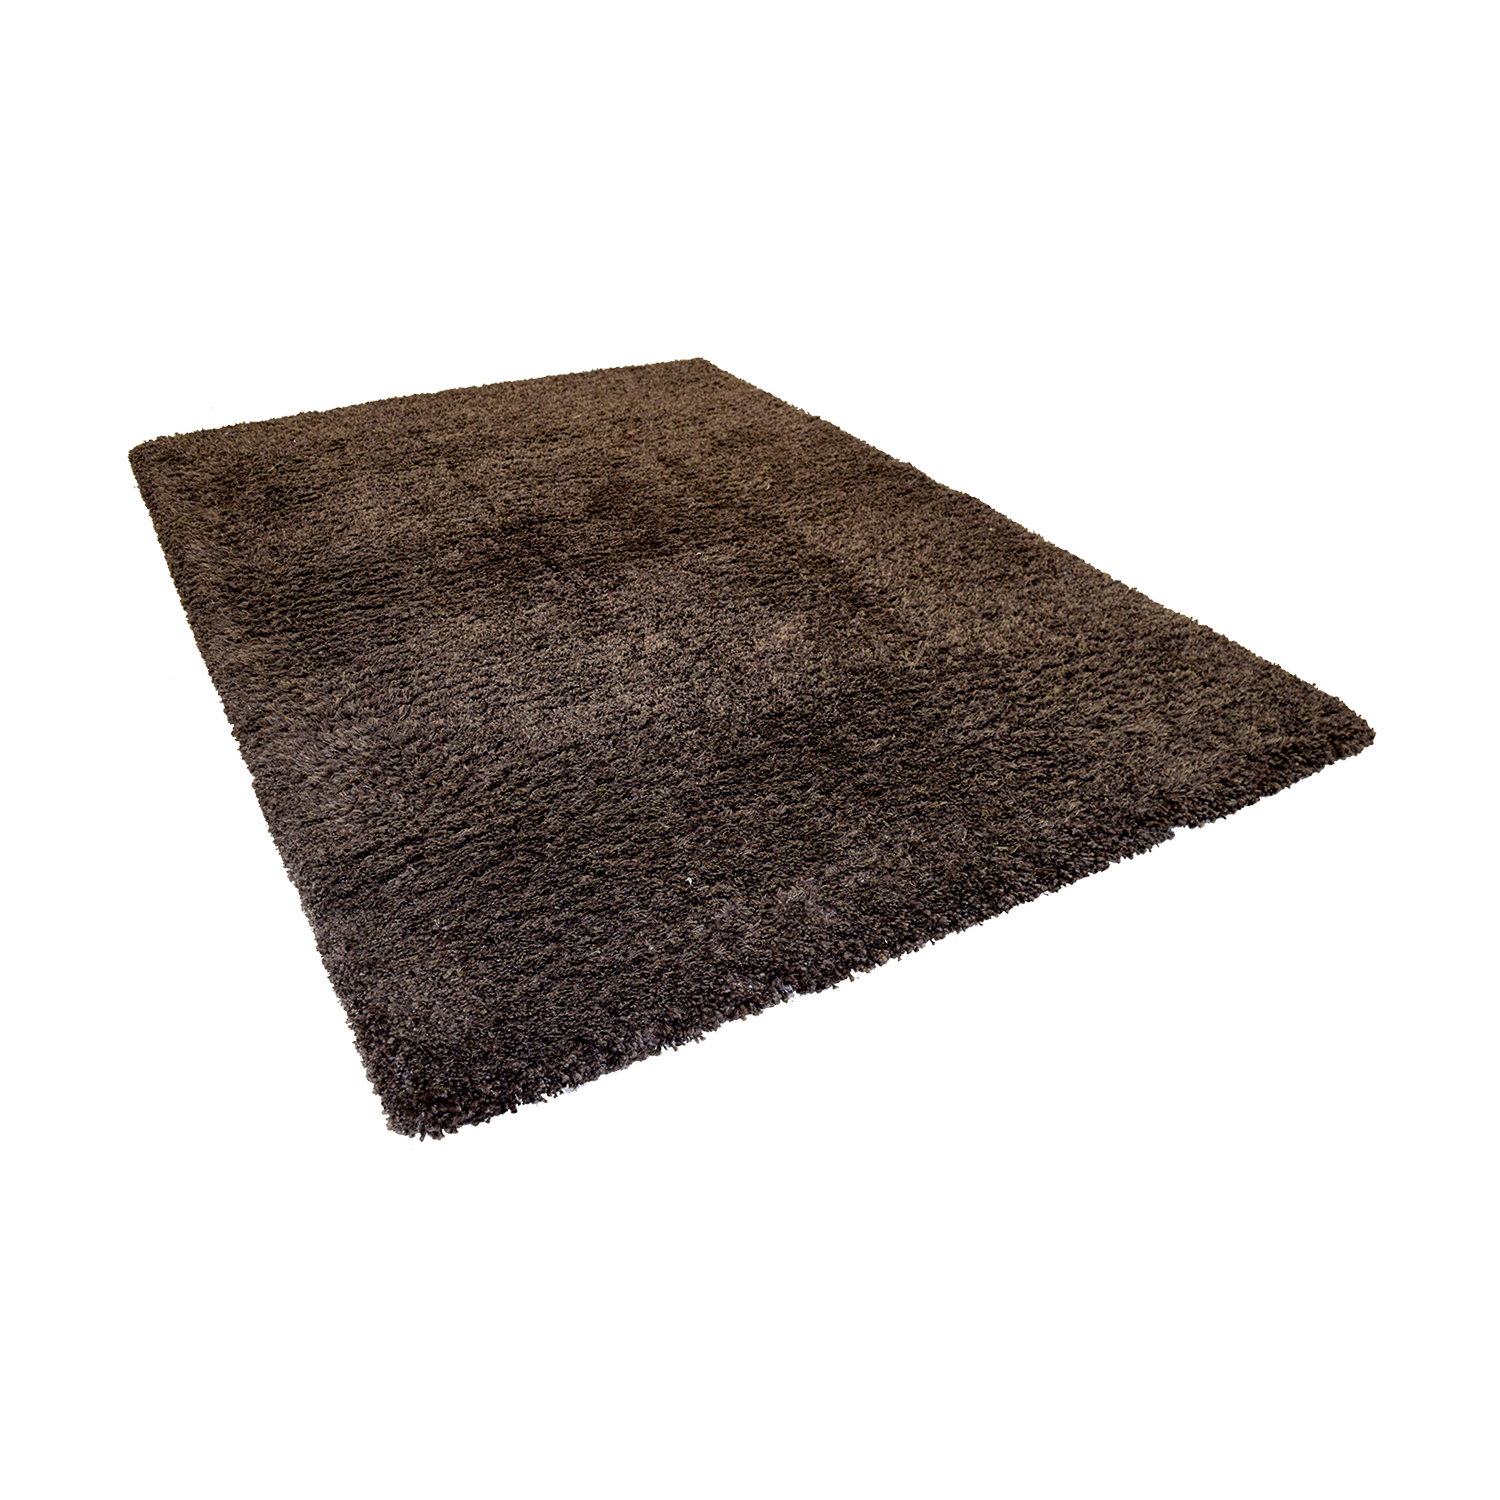 buy Crate & Barrel Brown Shag Rug Crate & Barrel Rugs